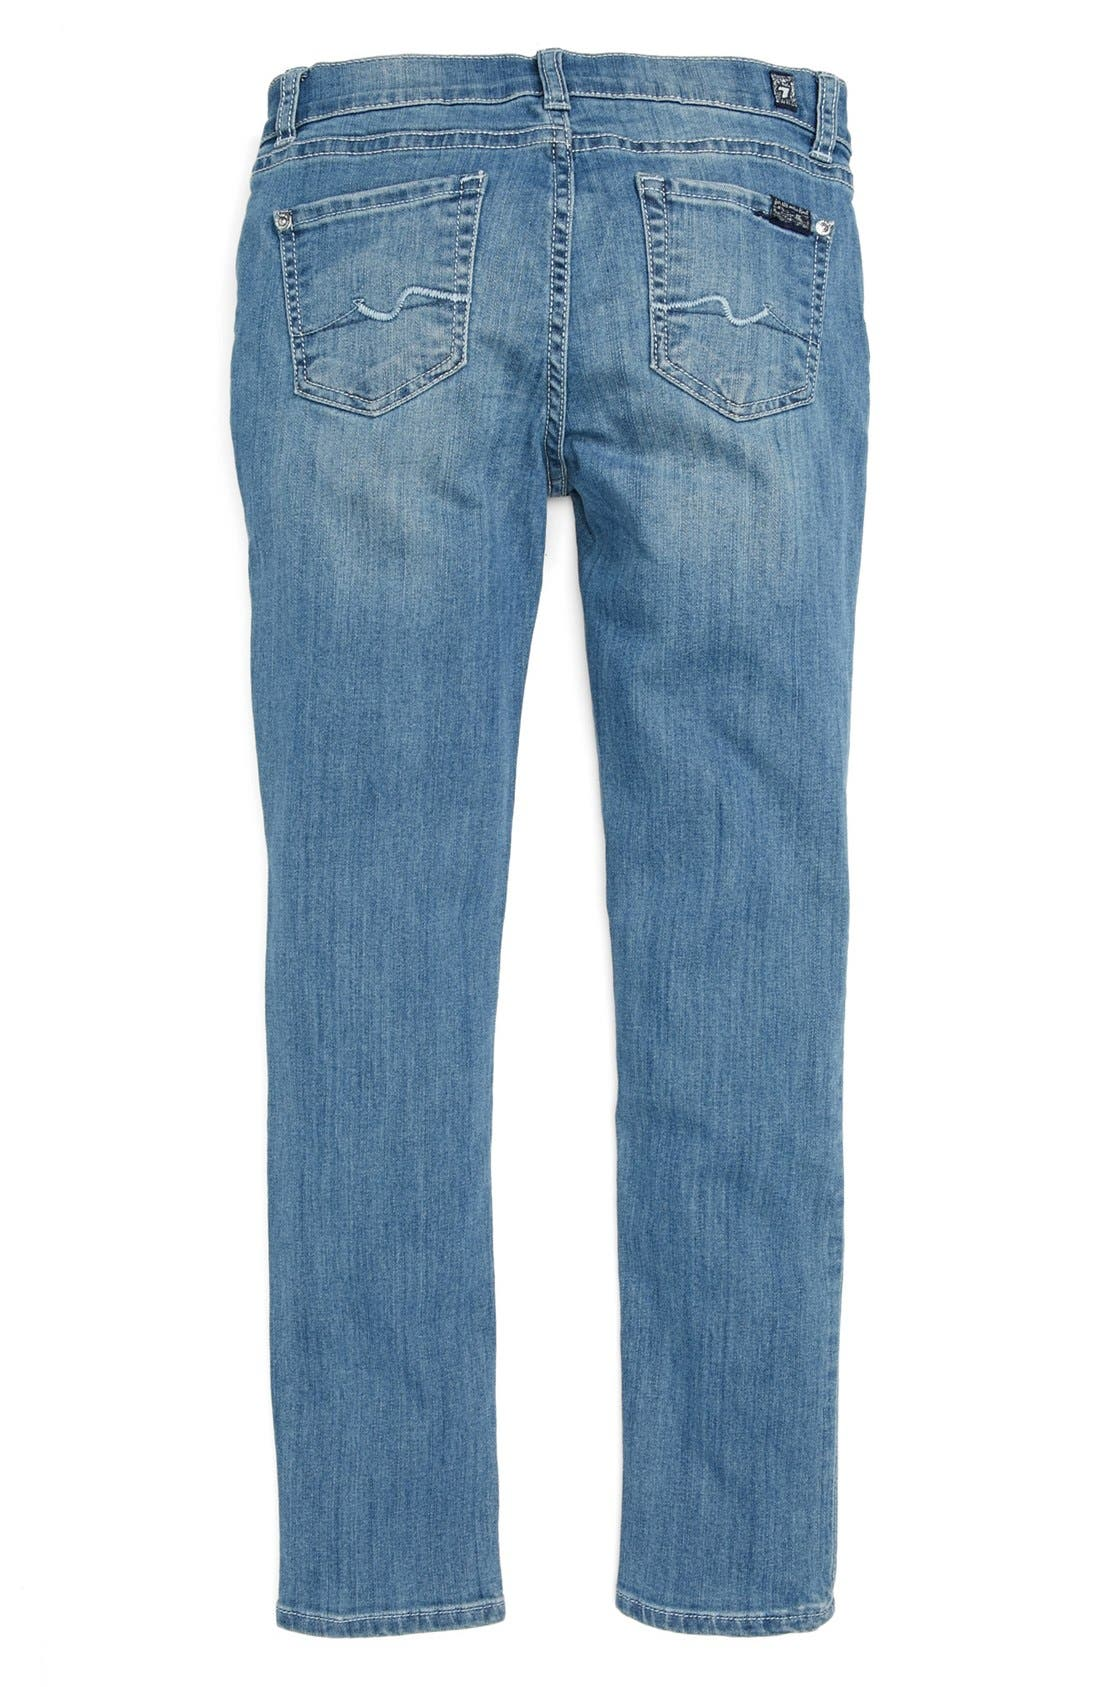 Alternate Image 1 Selected - 7 For All Mankind® 'The Skinny' Jeans (Big Girls)